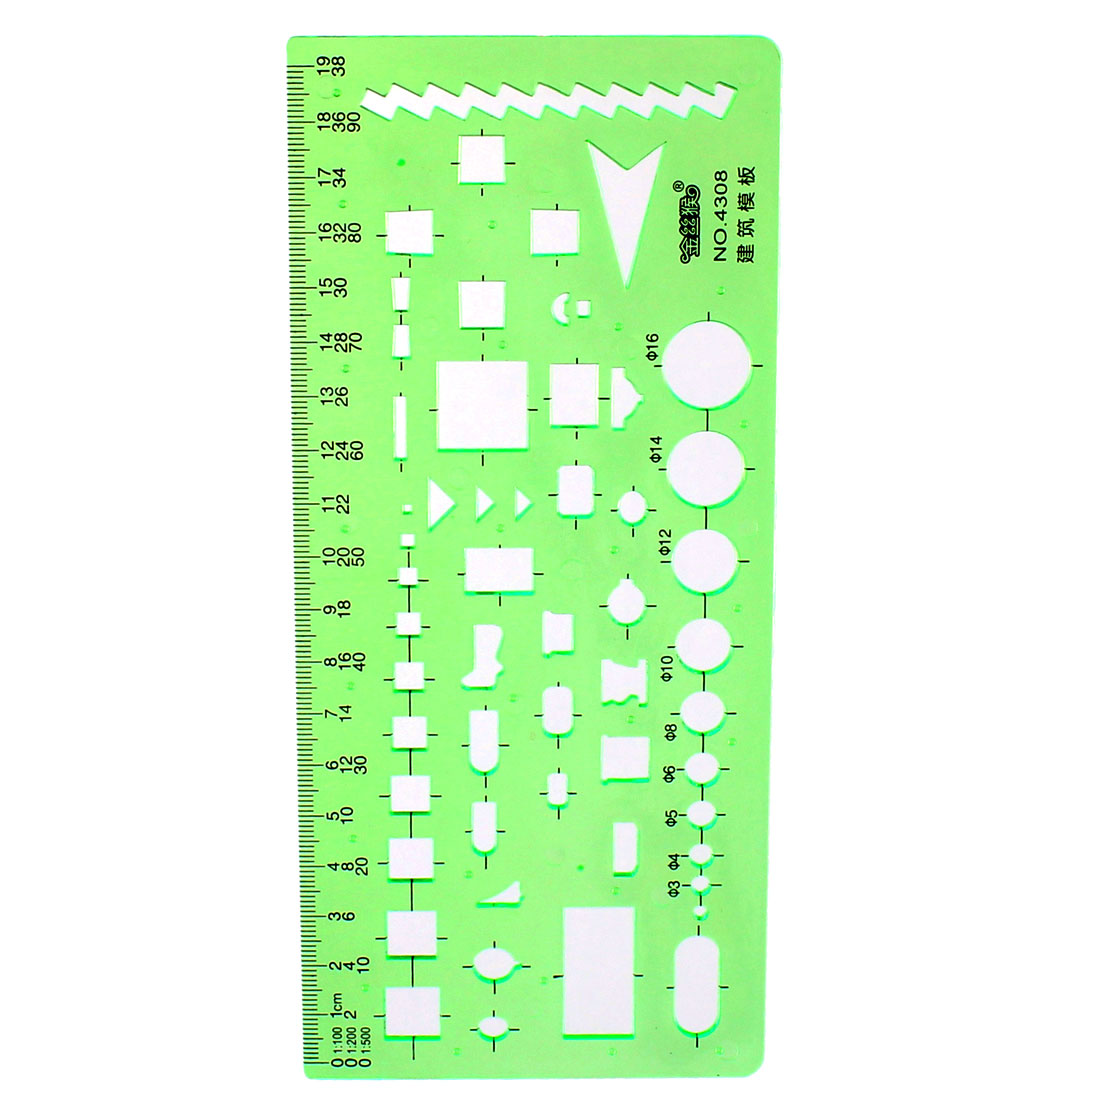 Office Building Design Figures Drawing Stencil Template Ruler Clear Green